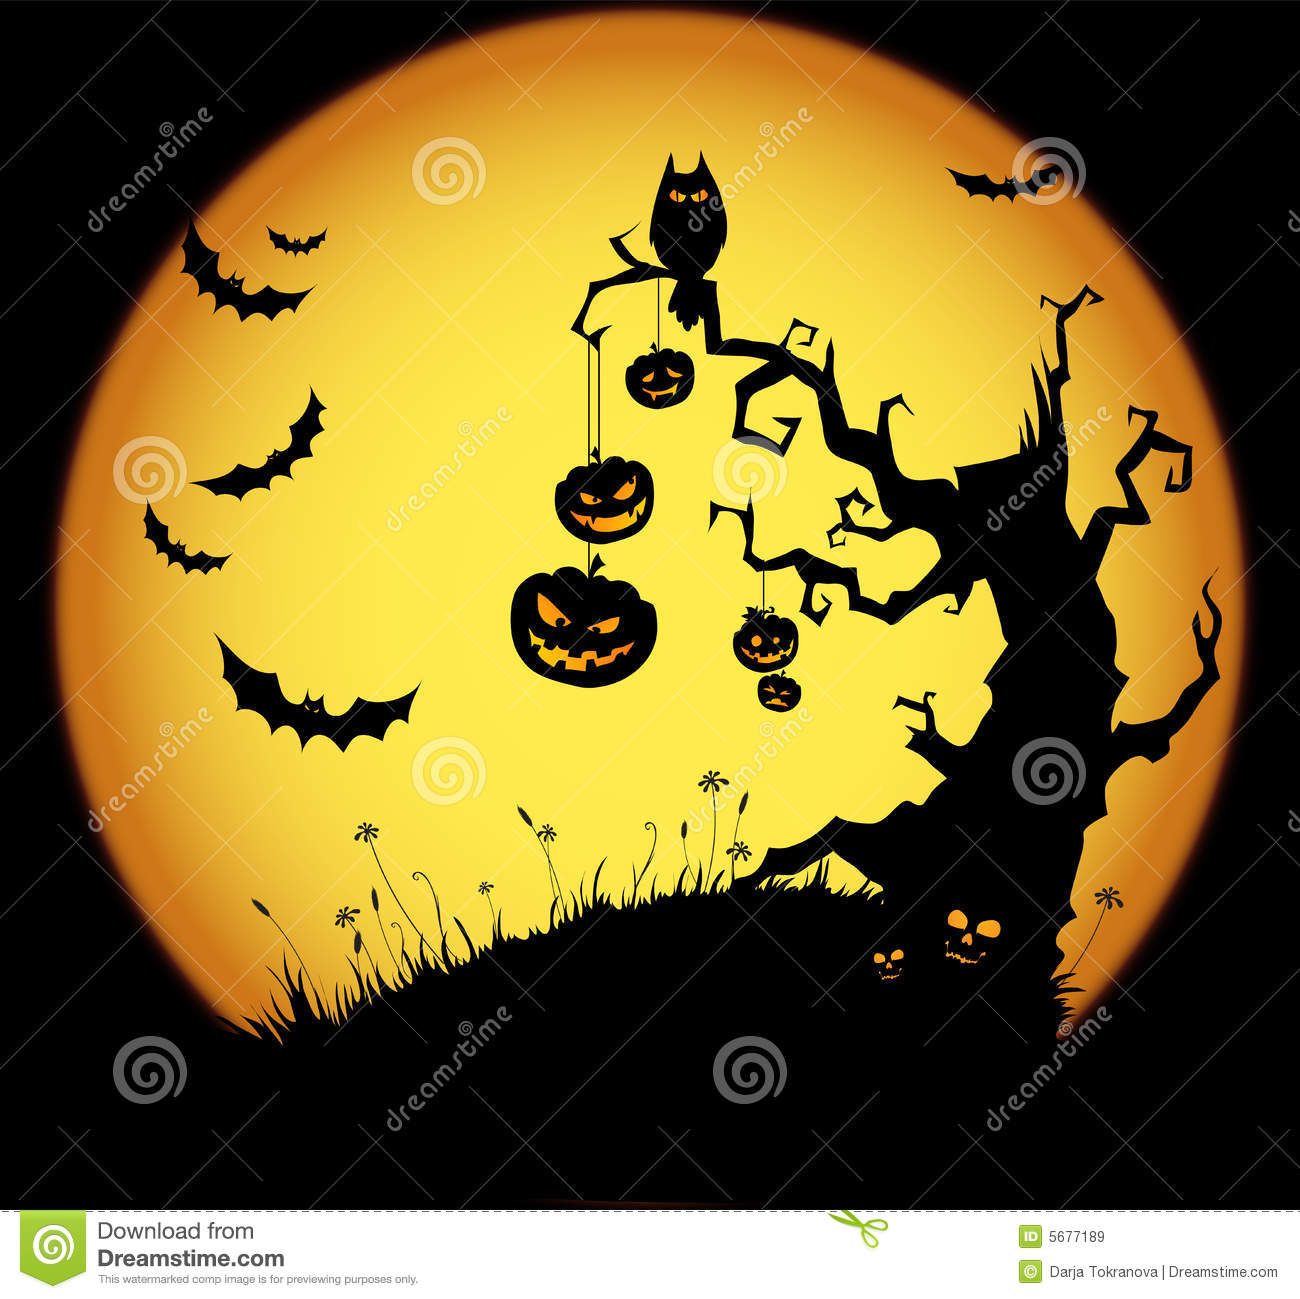 halloween scene - Download Halloween Pictures Free